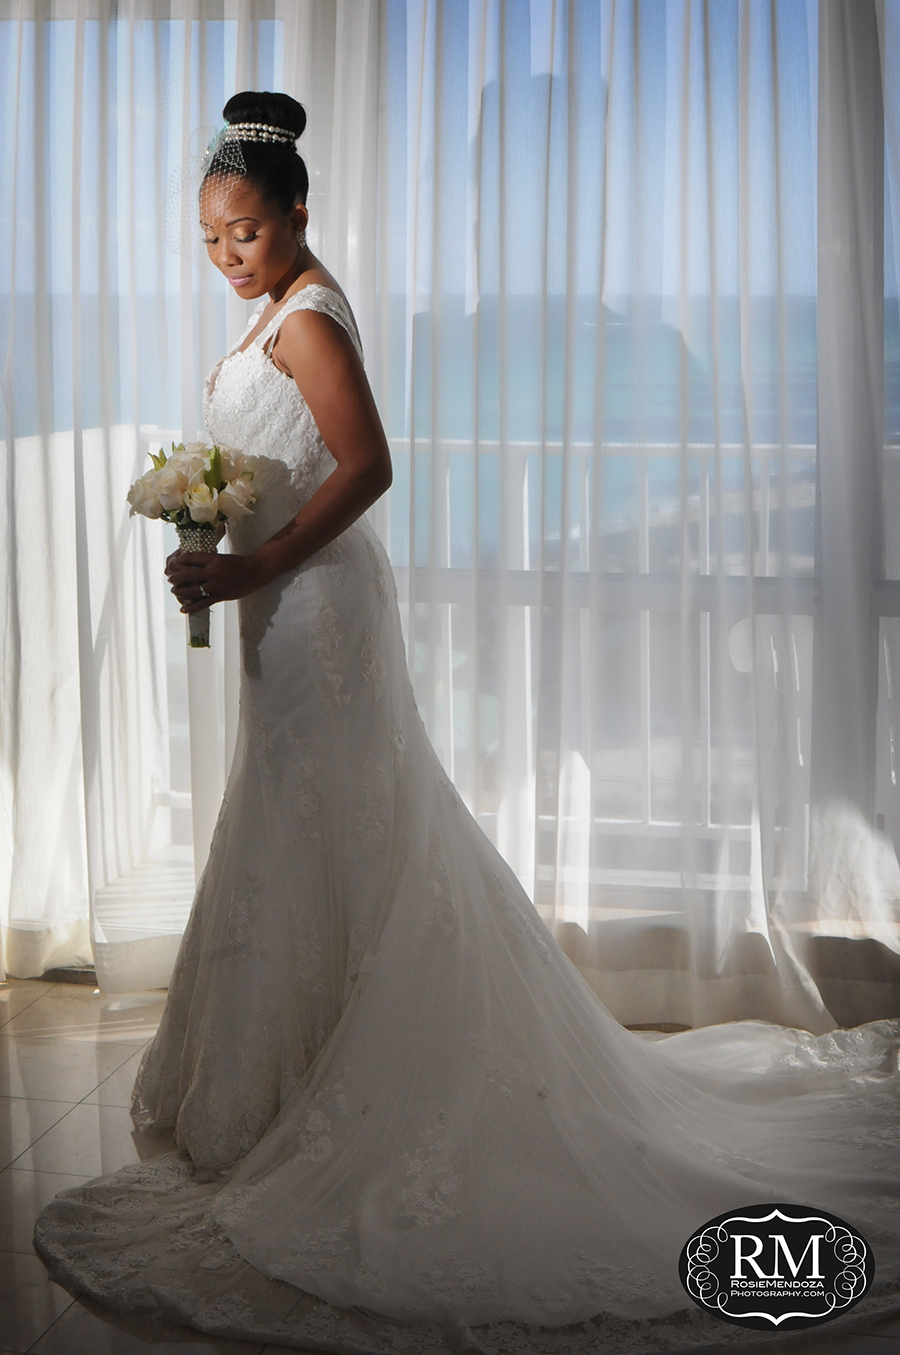 Bride's portrait before walking down the isle, featuring wedding dress and bridal bouquet